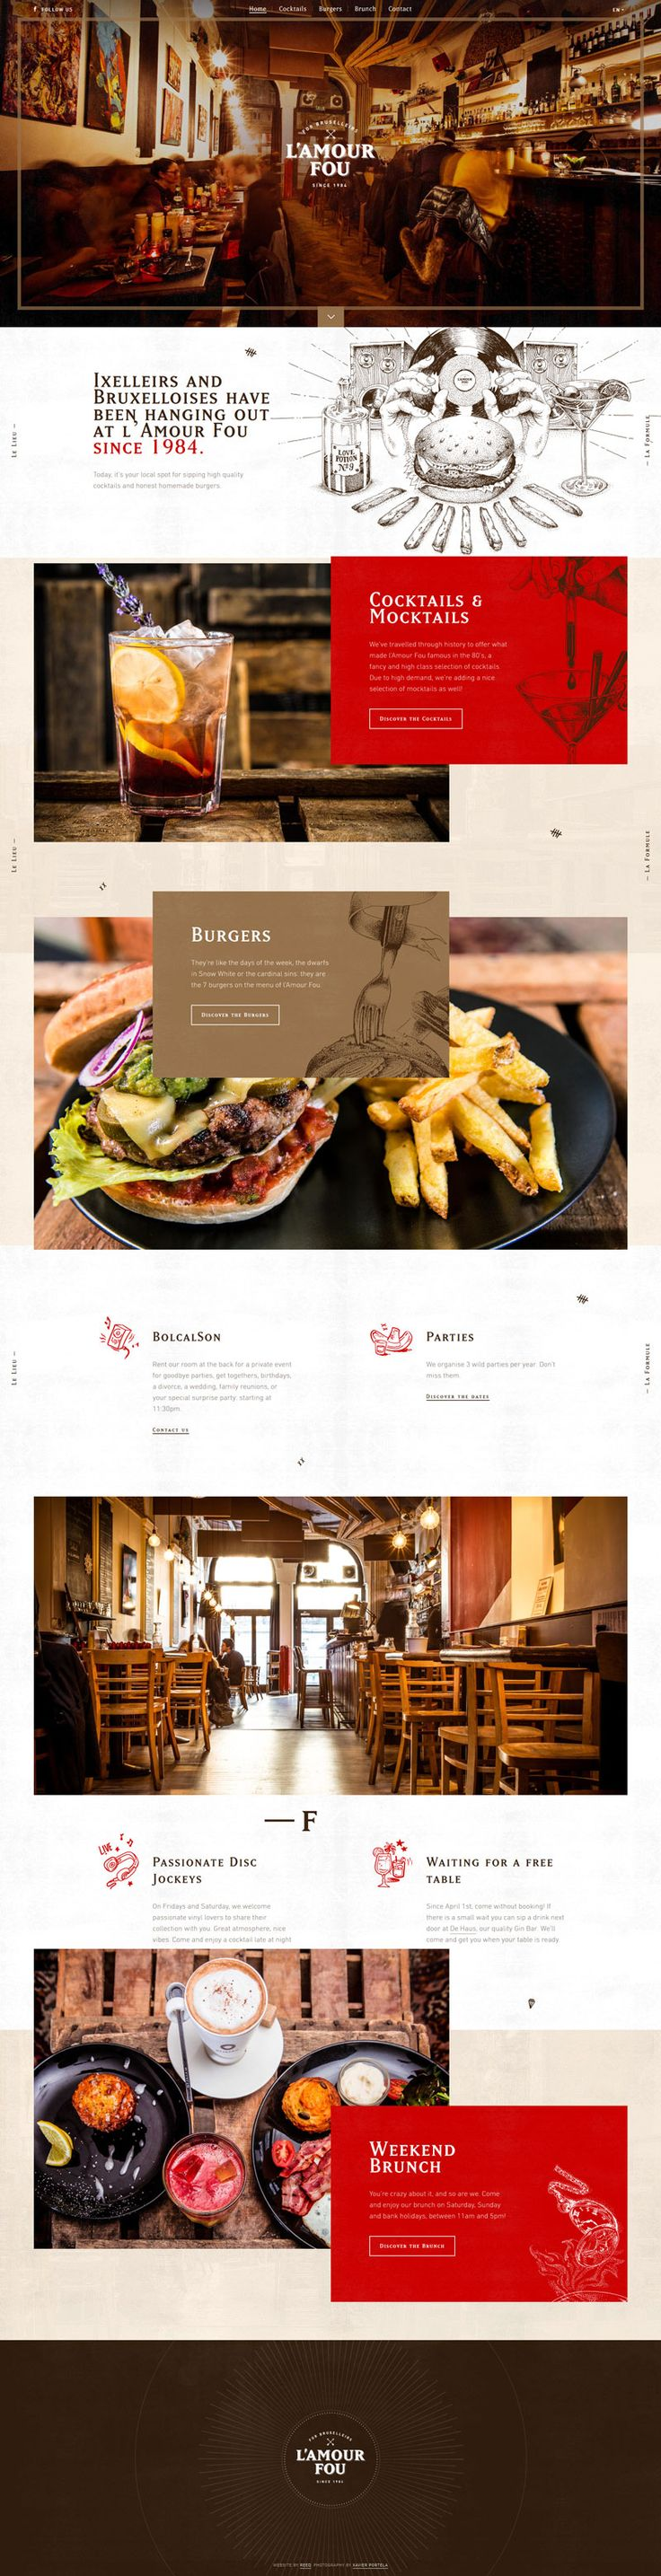 vintage design website example category inspiration name site lamour fou type website restaurant colors brown and red